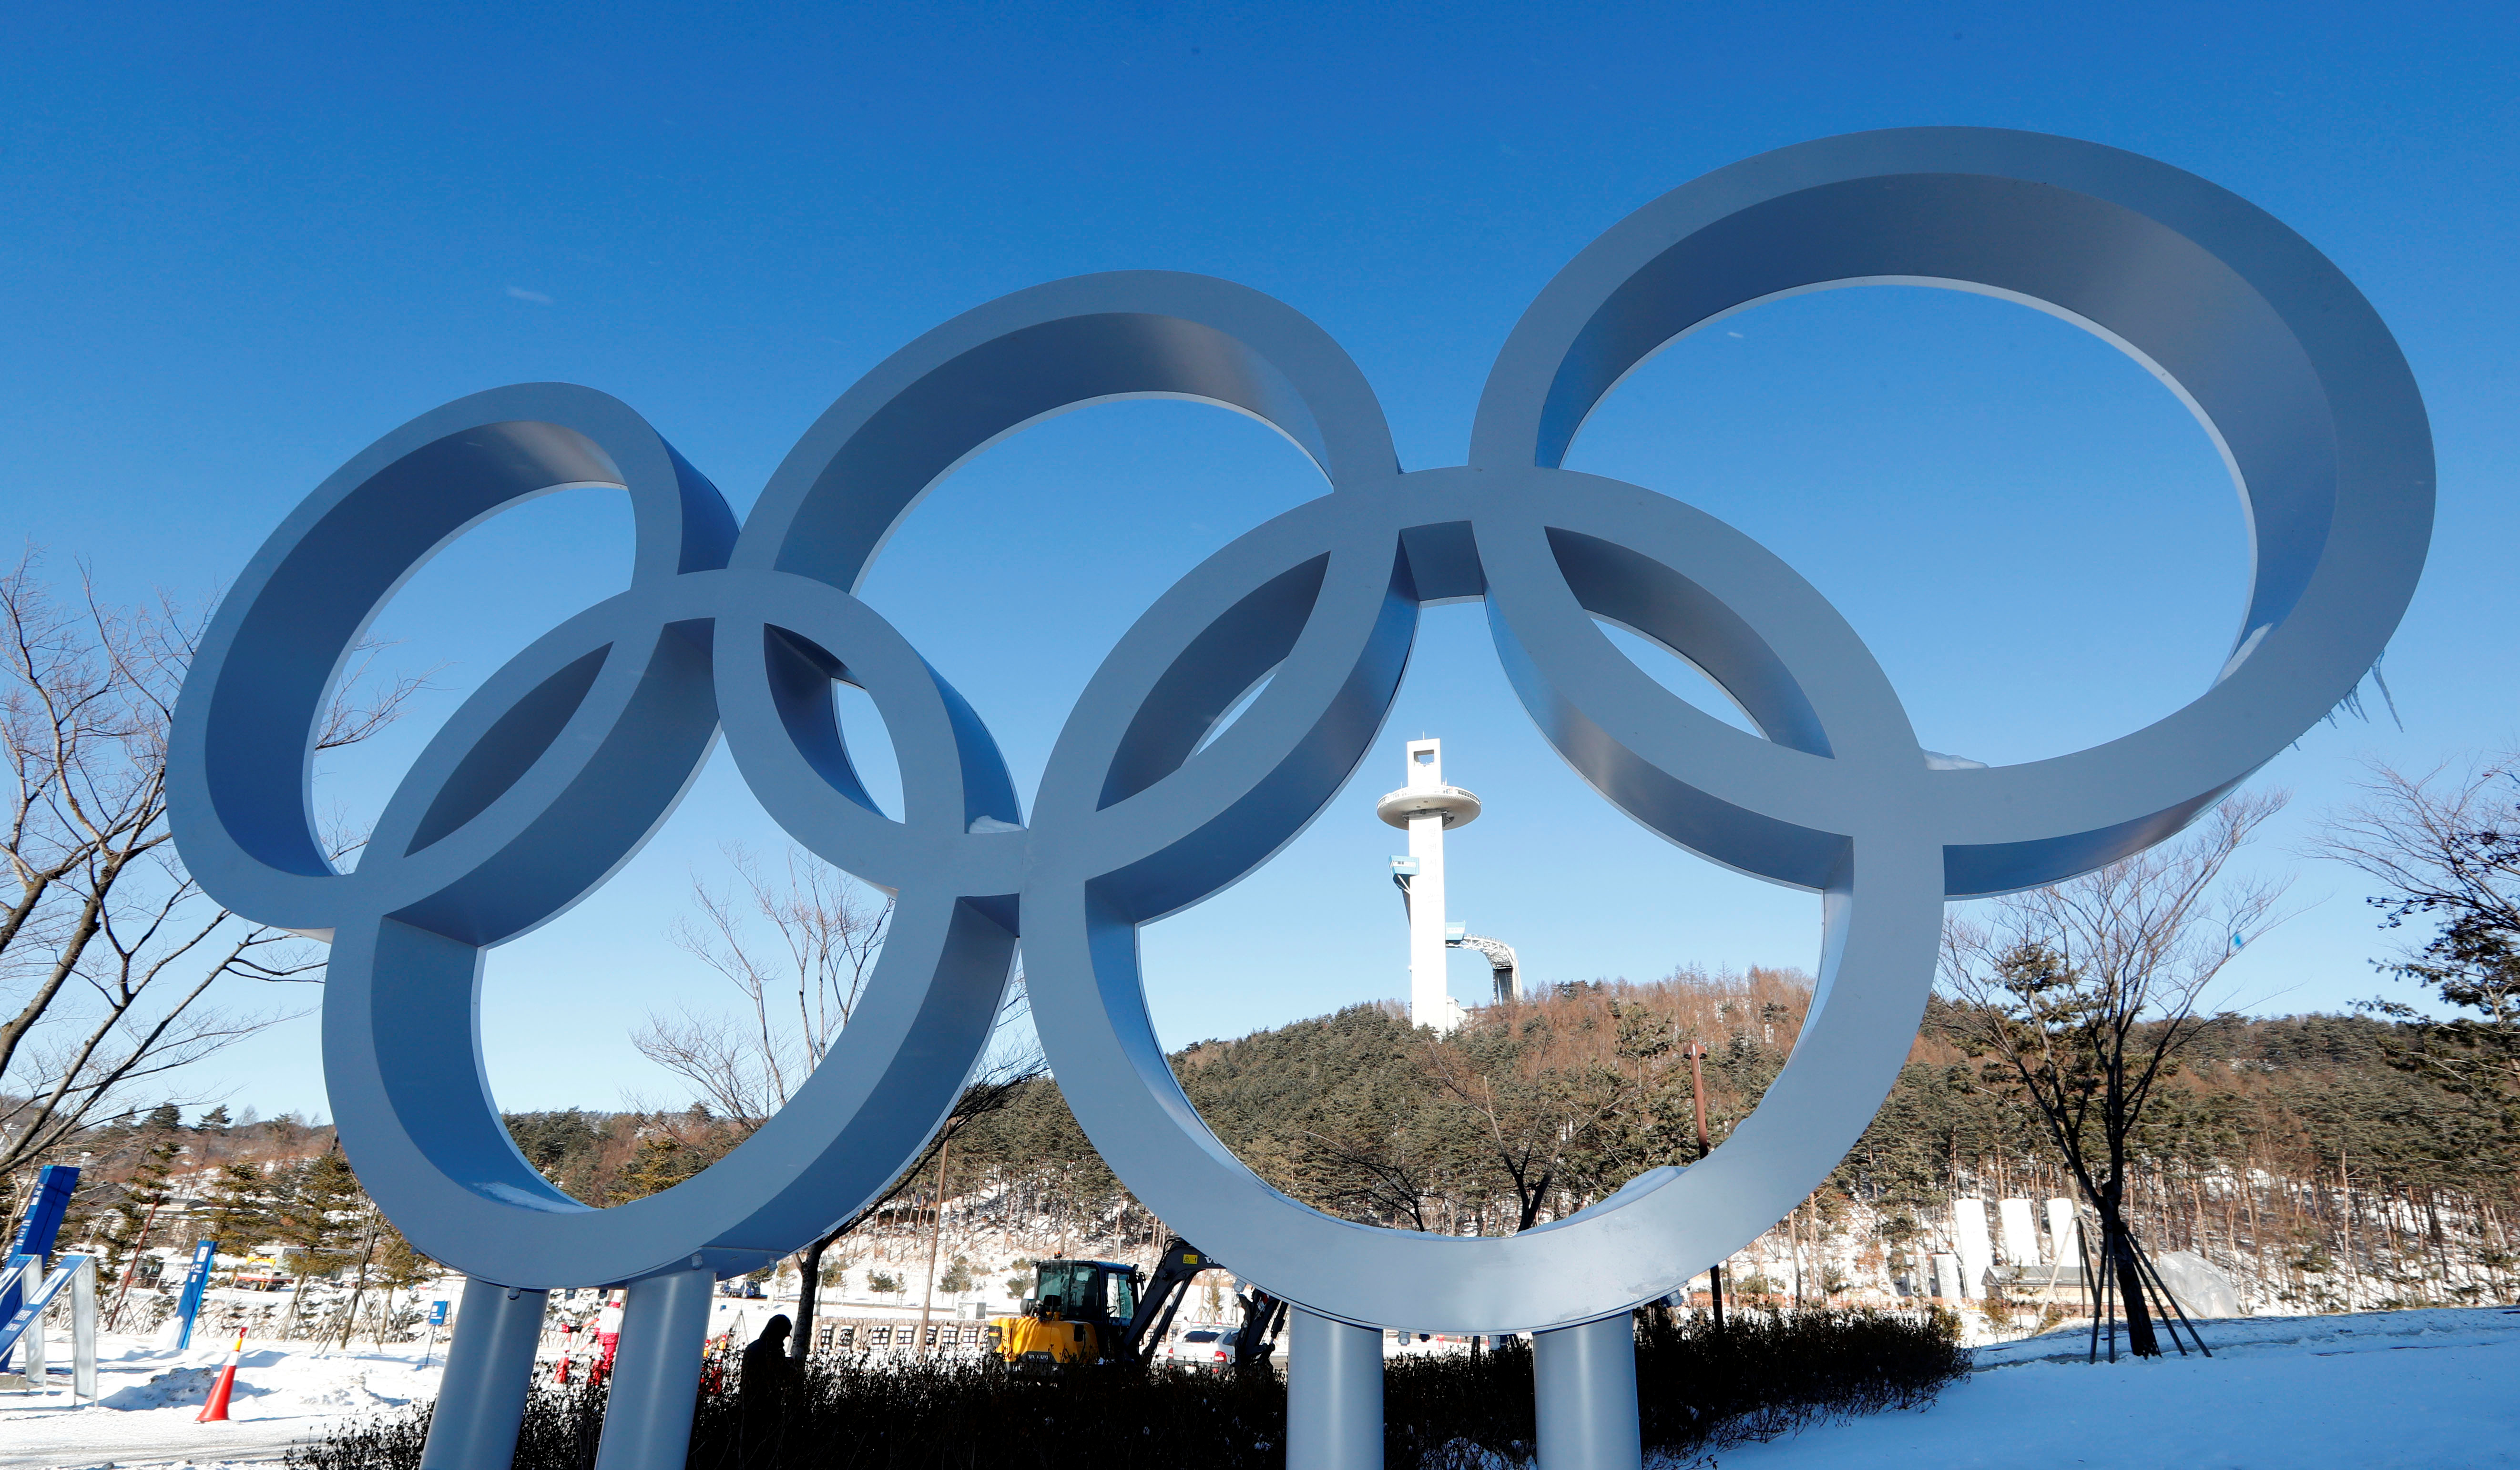 South Korea Rejects 'Pyongyang Olympics' Criticism | Voice of